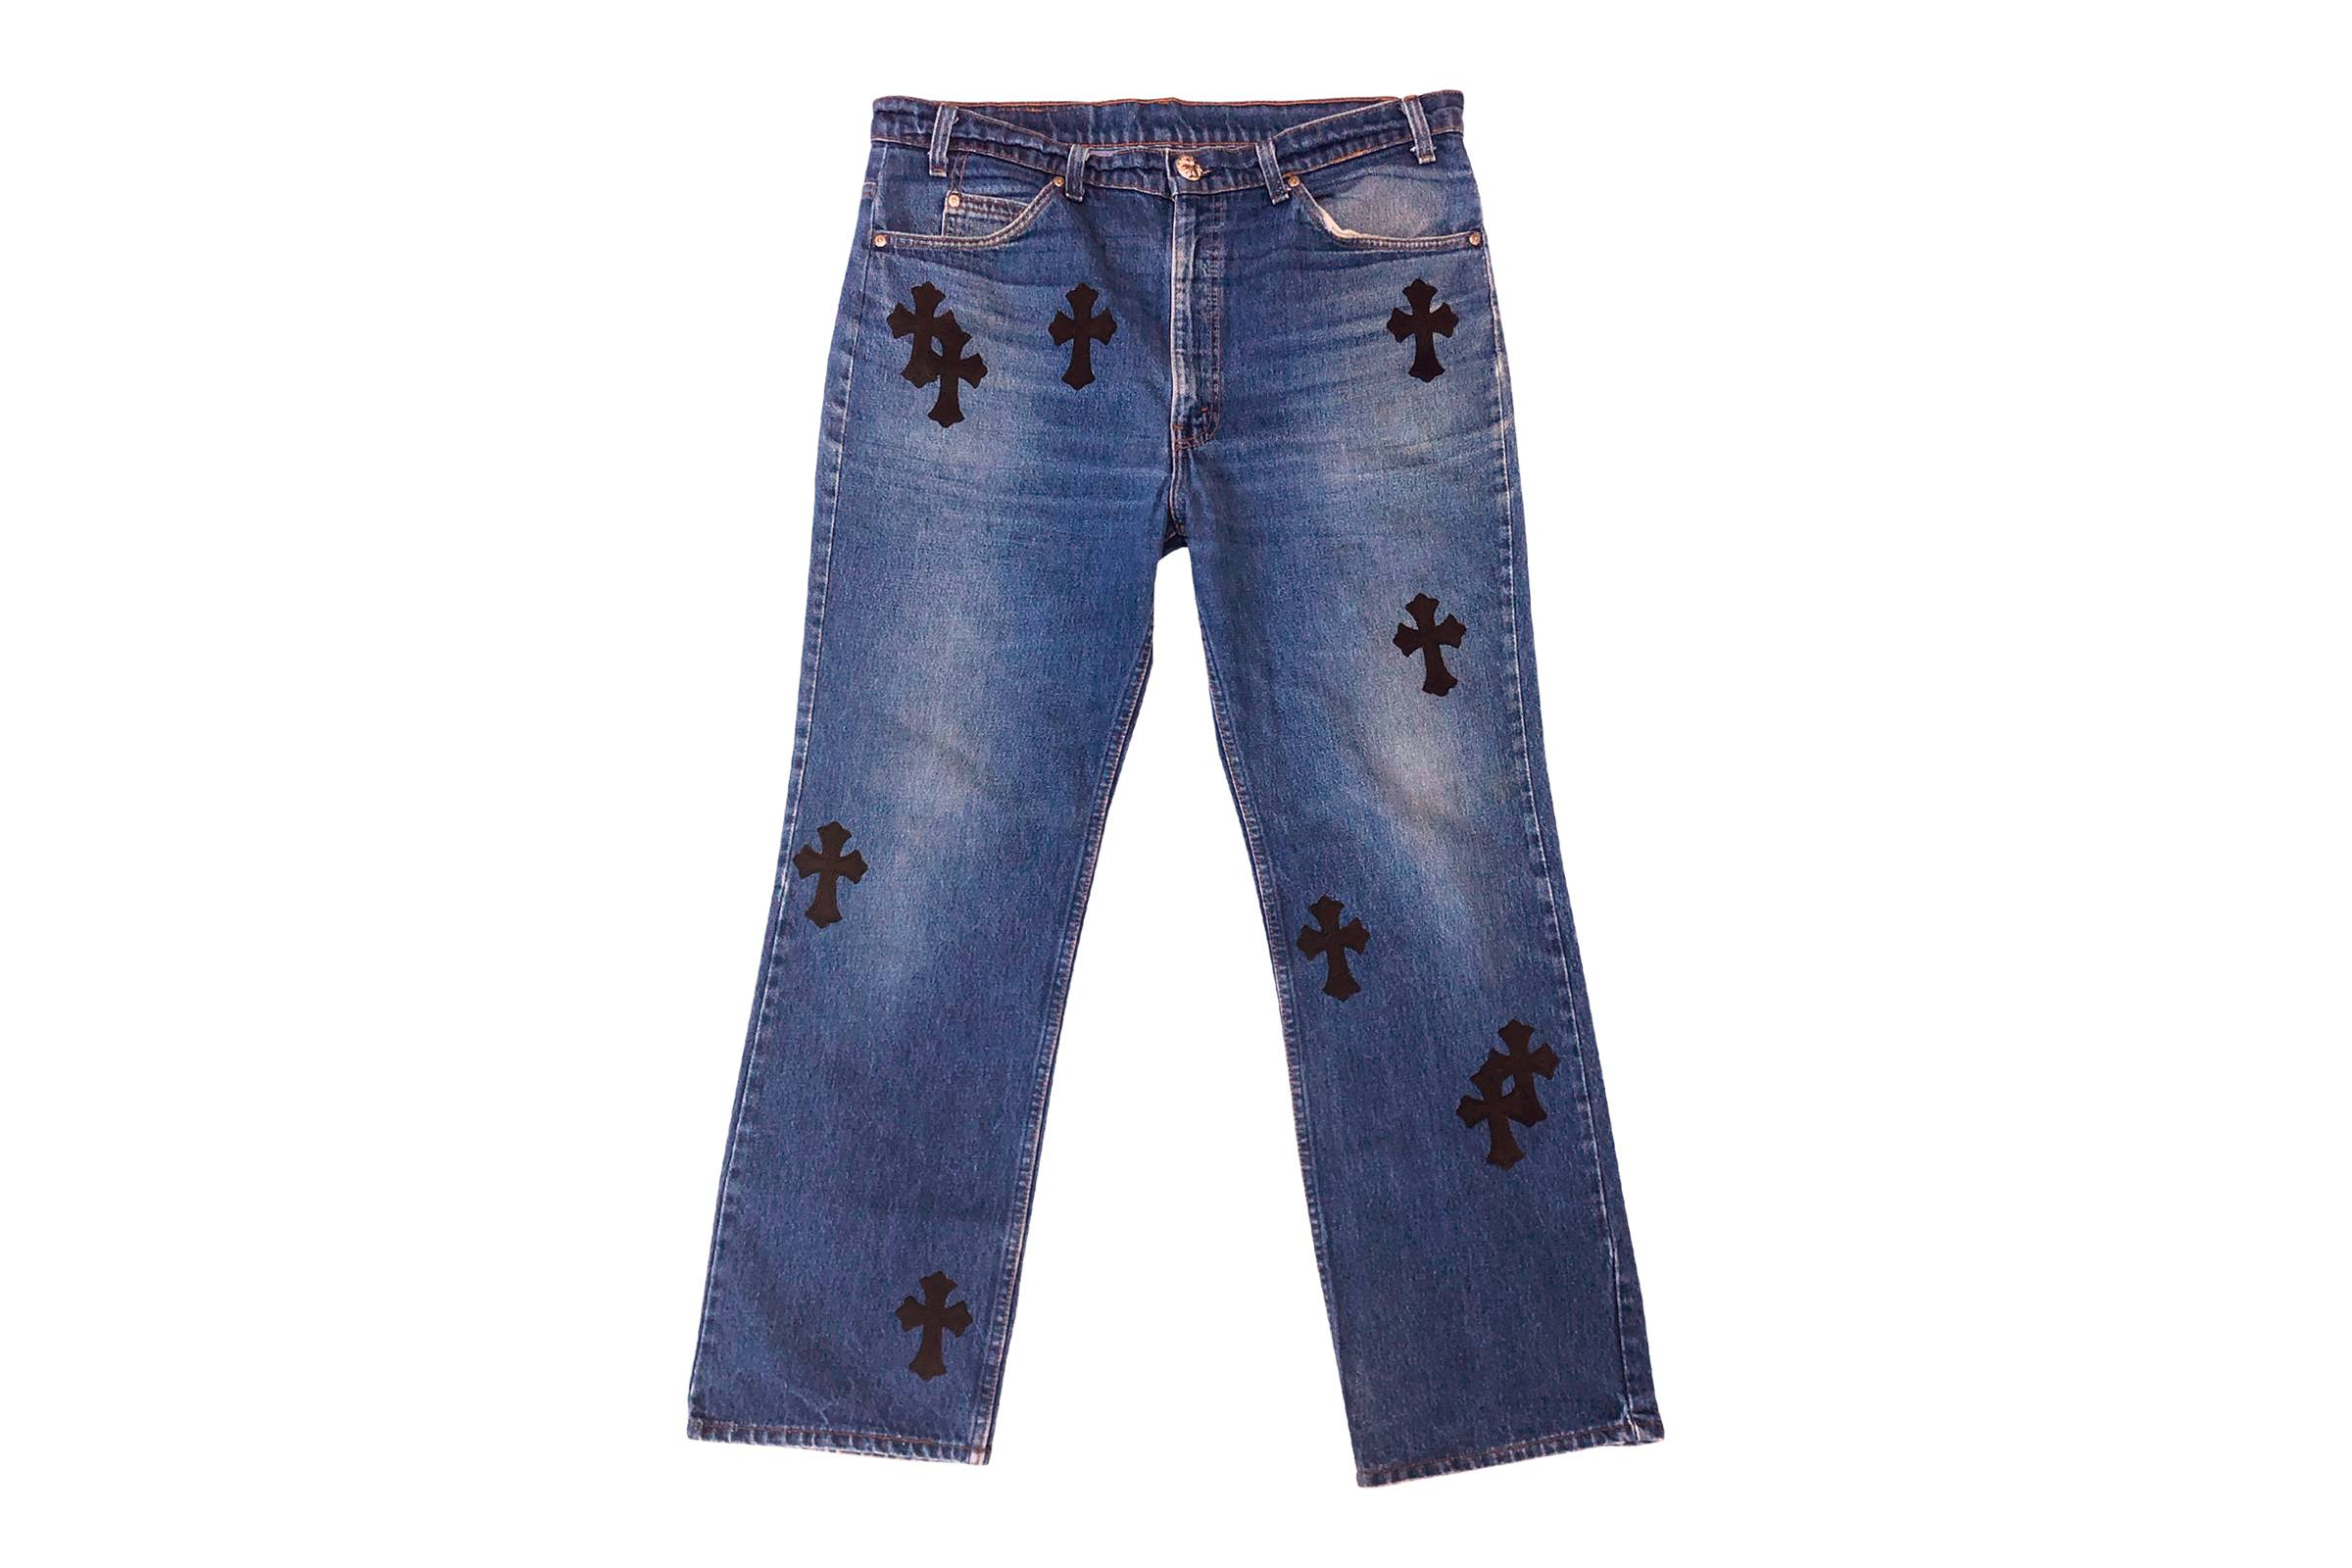 Chome Hearts x Levi's Orange Tab 517 Cross Patchwork Denim